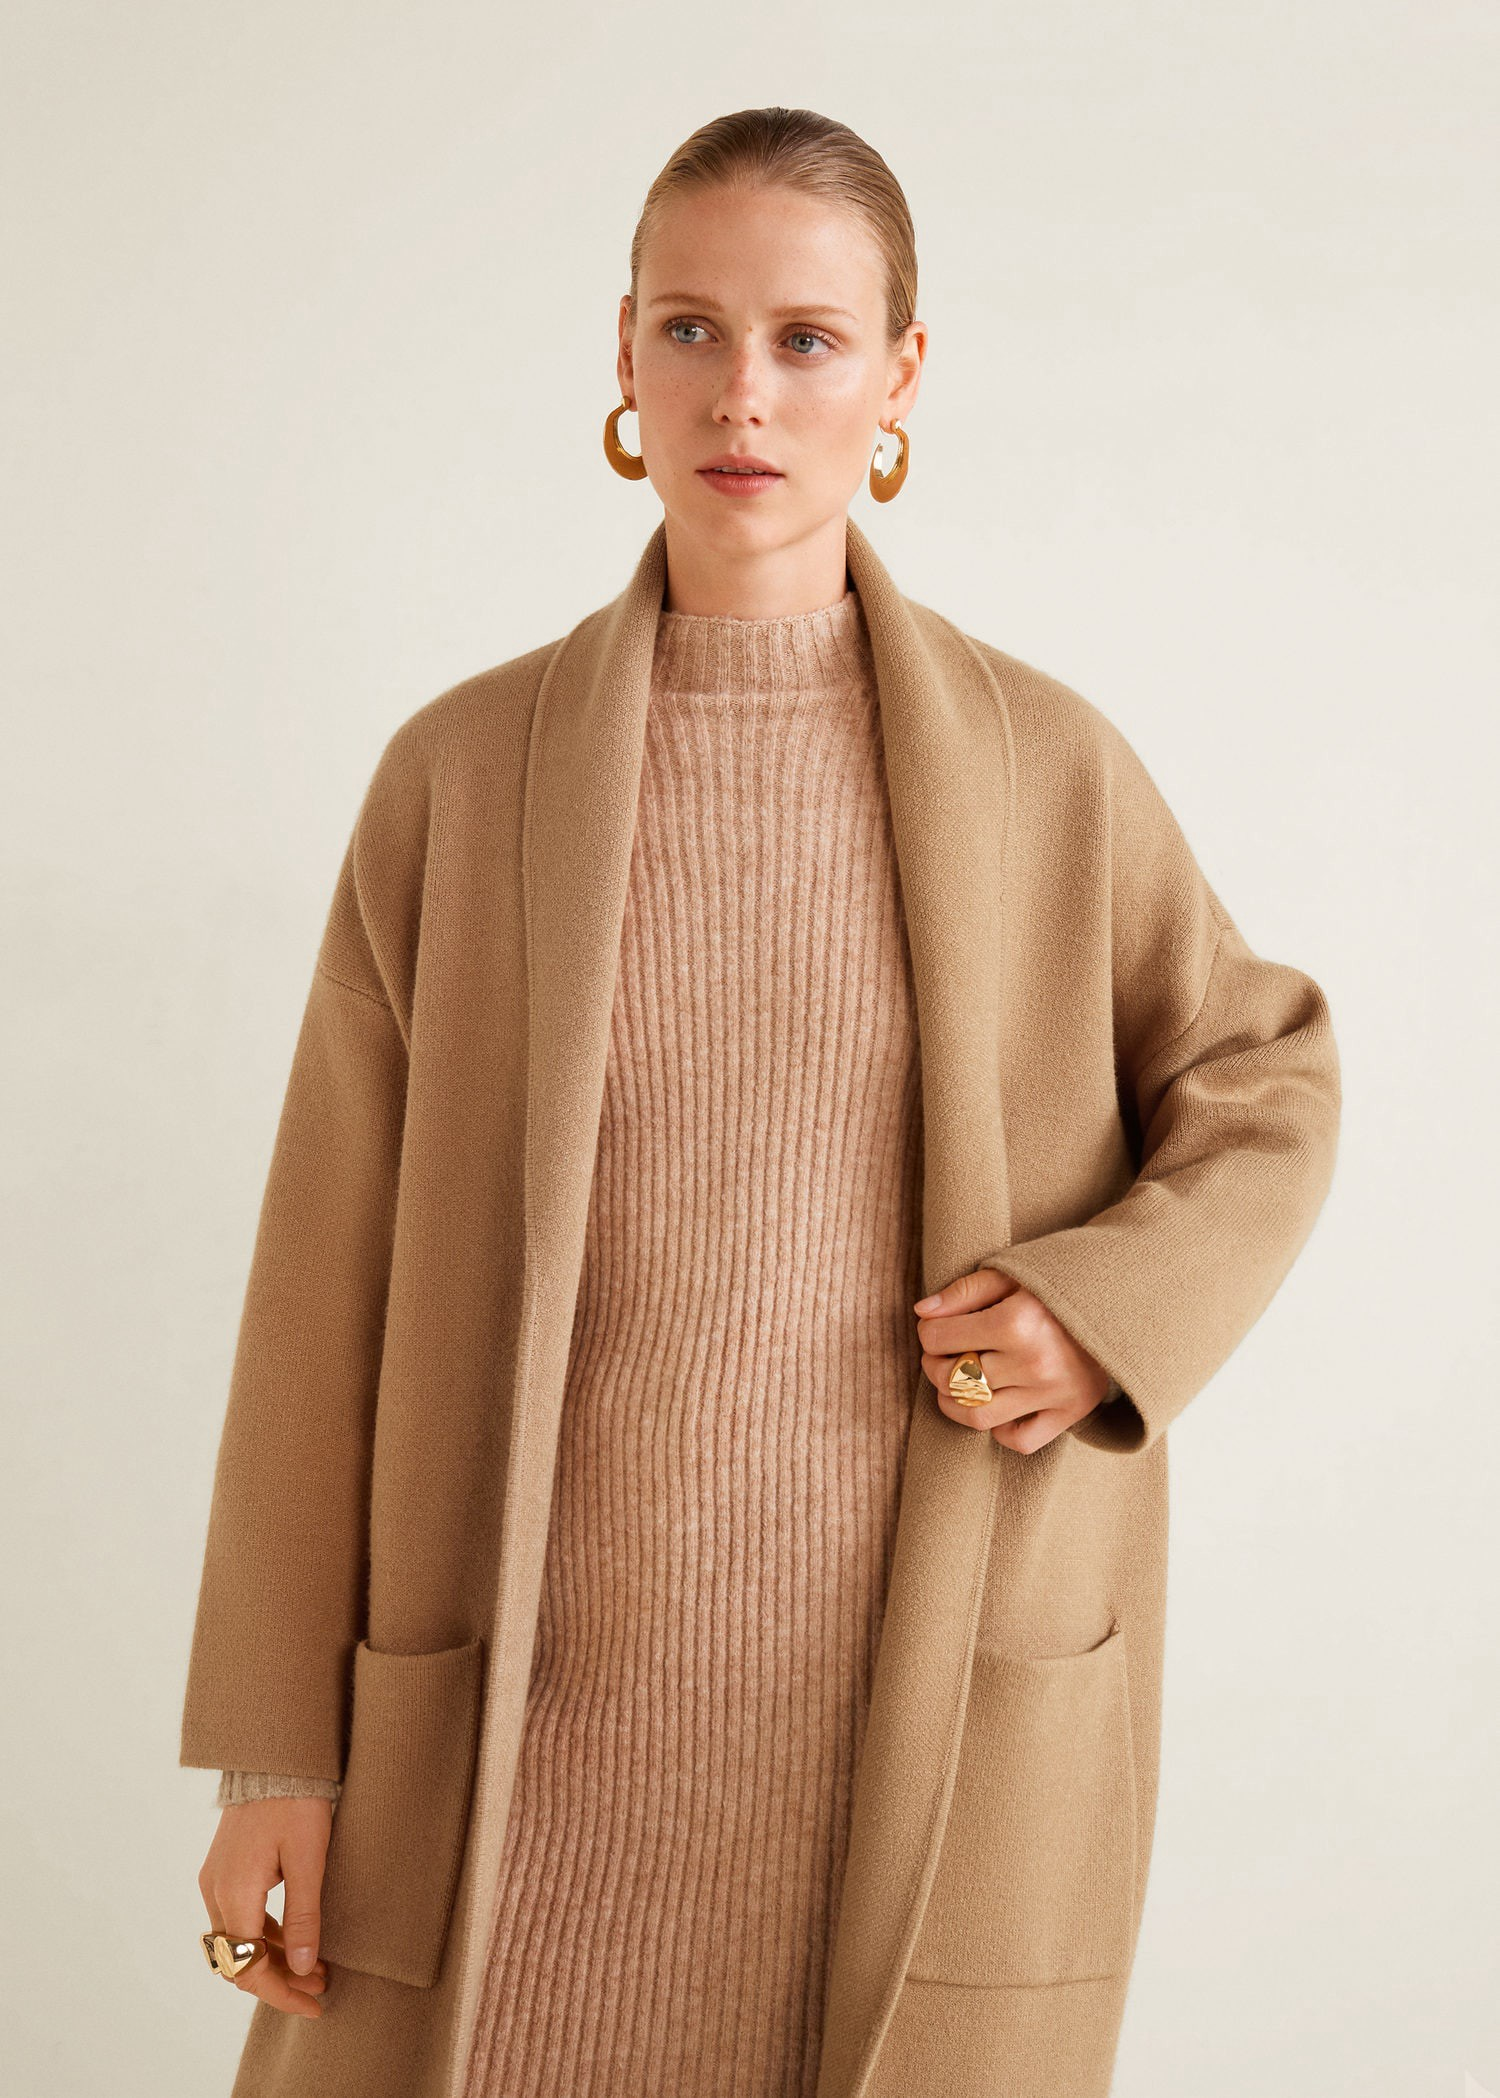 91c4bec3 Mango Straight Pocketed Coat - Xxs-Xs in 2019 | Products | Coat ...